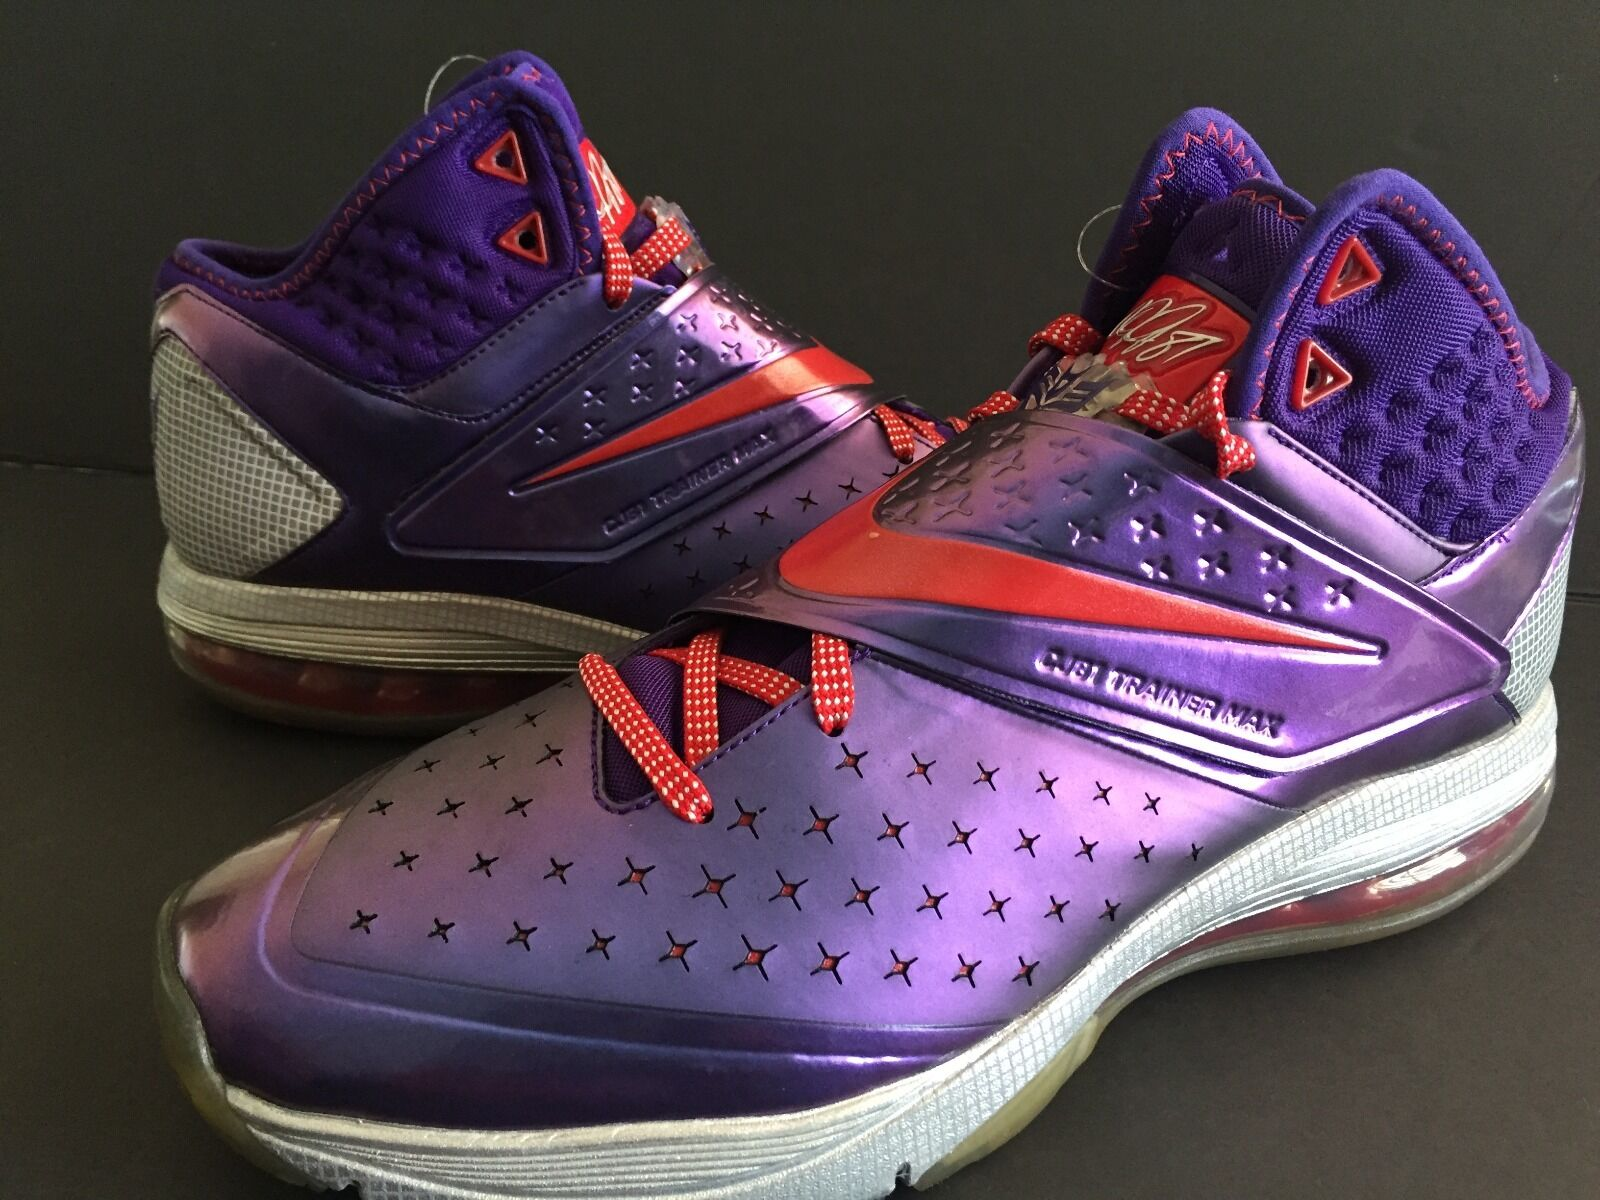 NIKE CJ81 Trainer Max Megatron  Purple Red Athletic Running shoes Mens Size 10.5